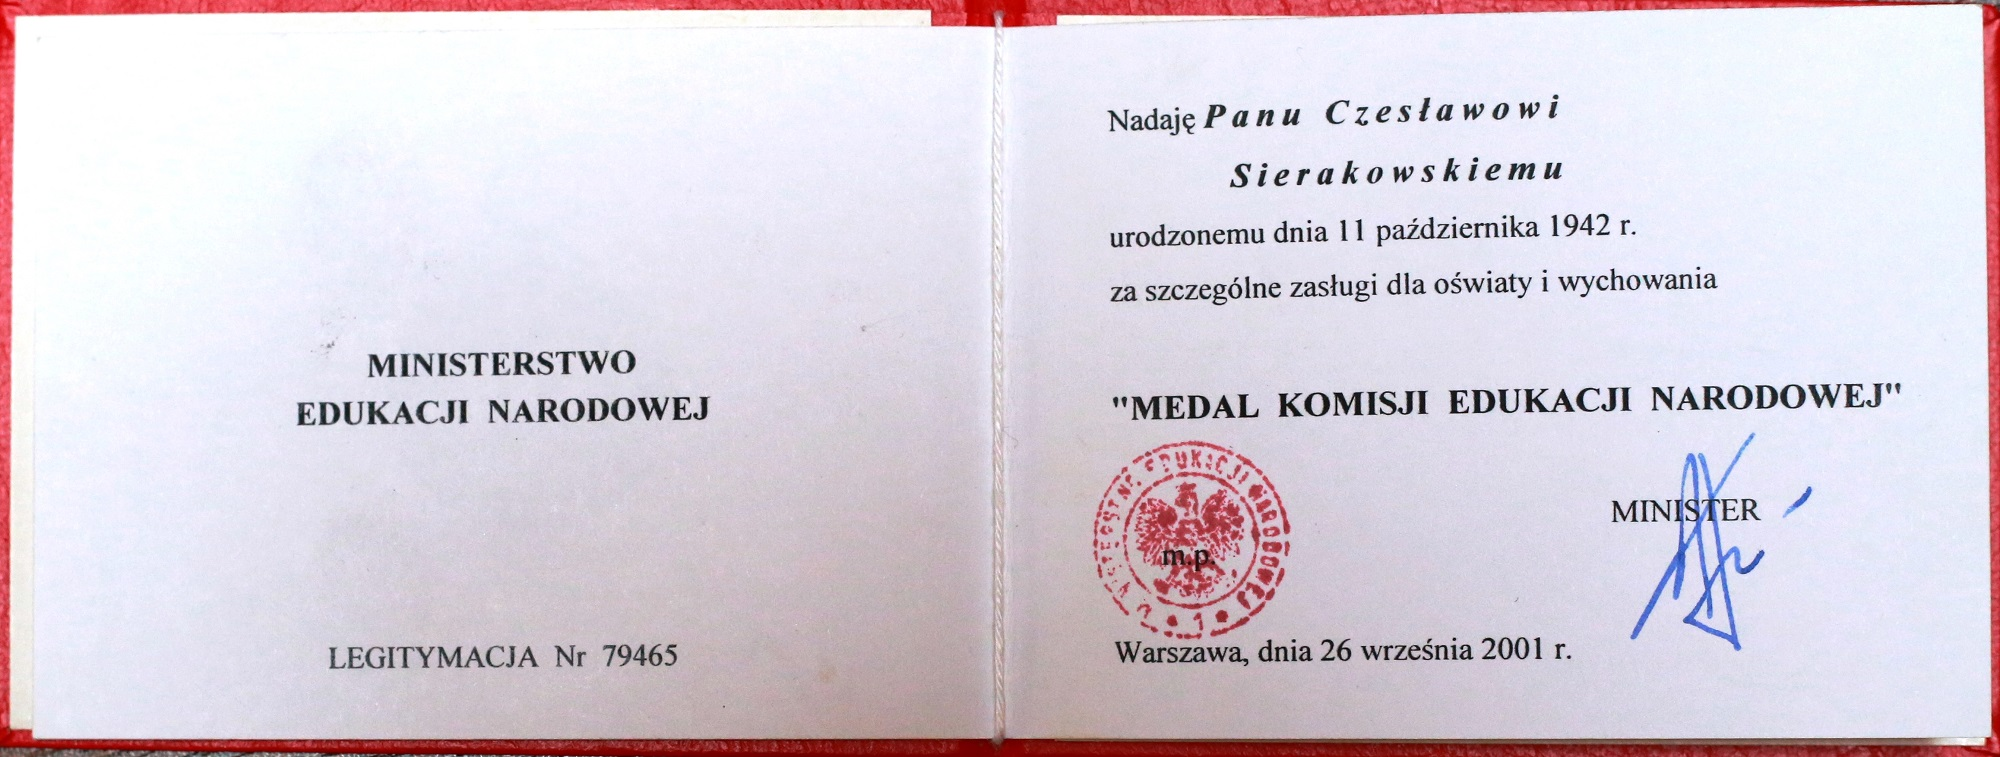 A certificate added to The Medal of Ministry of National Education for special services in terms of the education and training of the young painters.